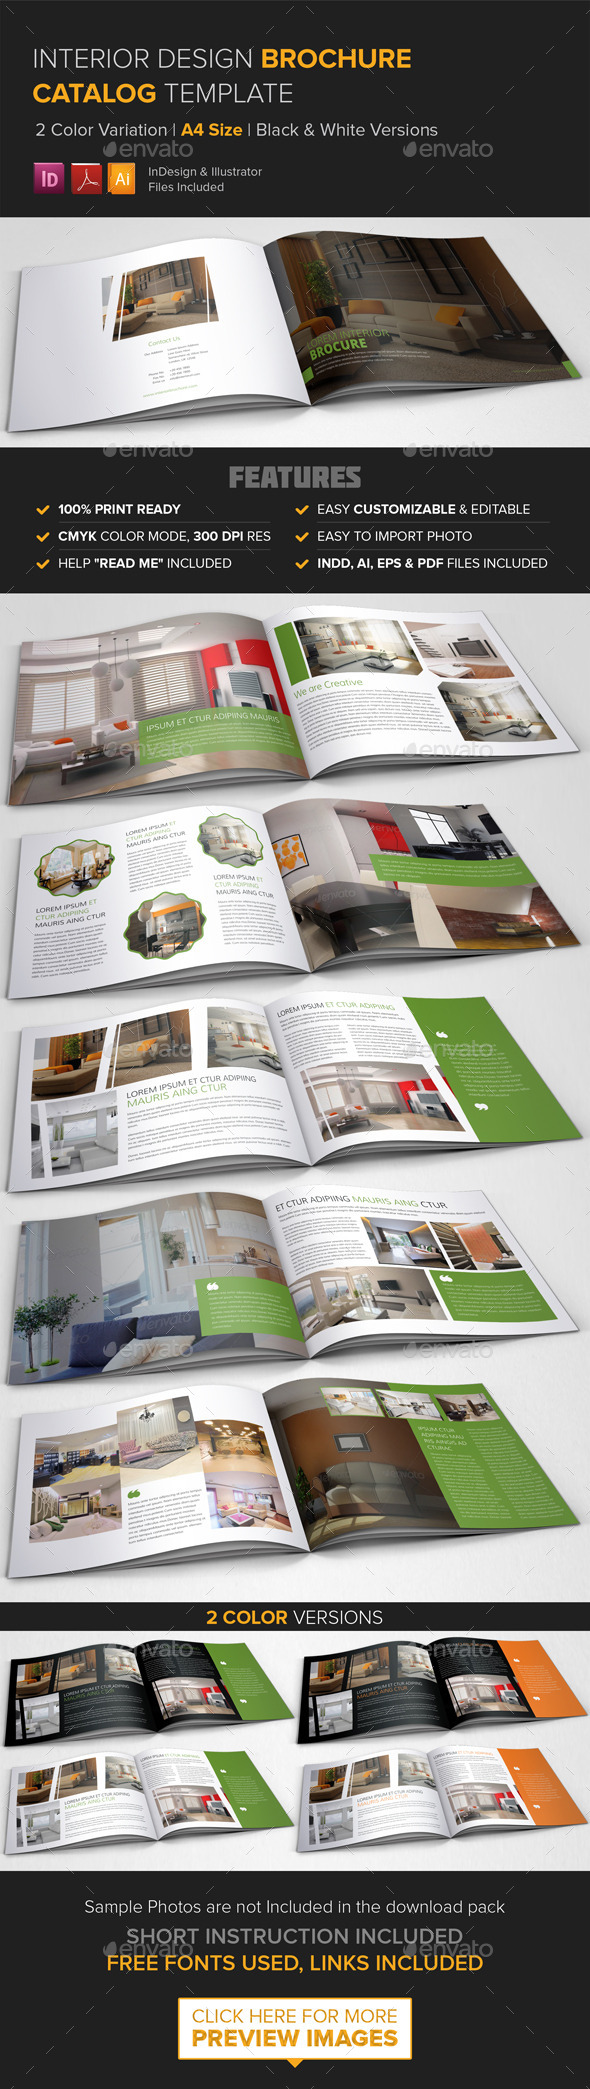 GraphicRiver Interior Design Brochure Catalog Template 9020008